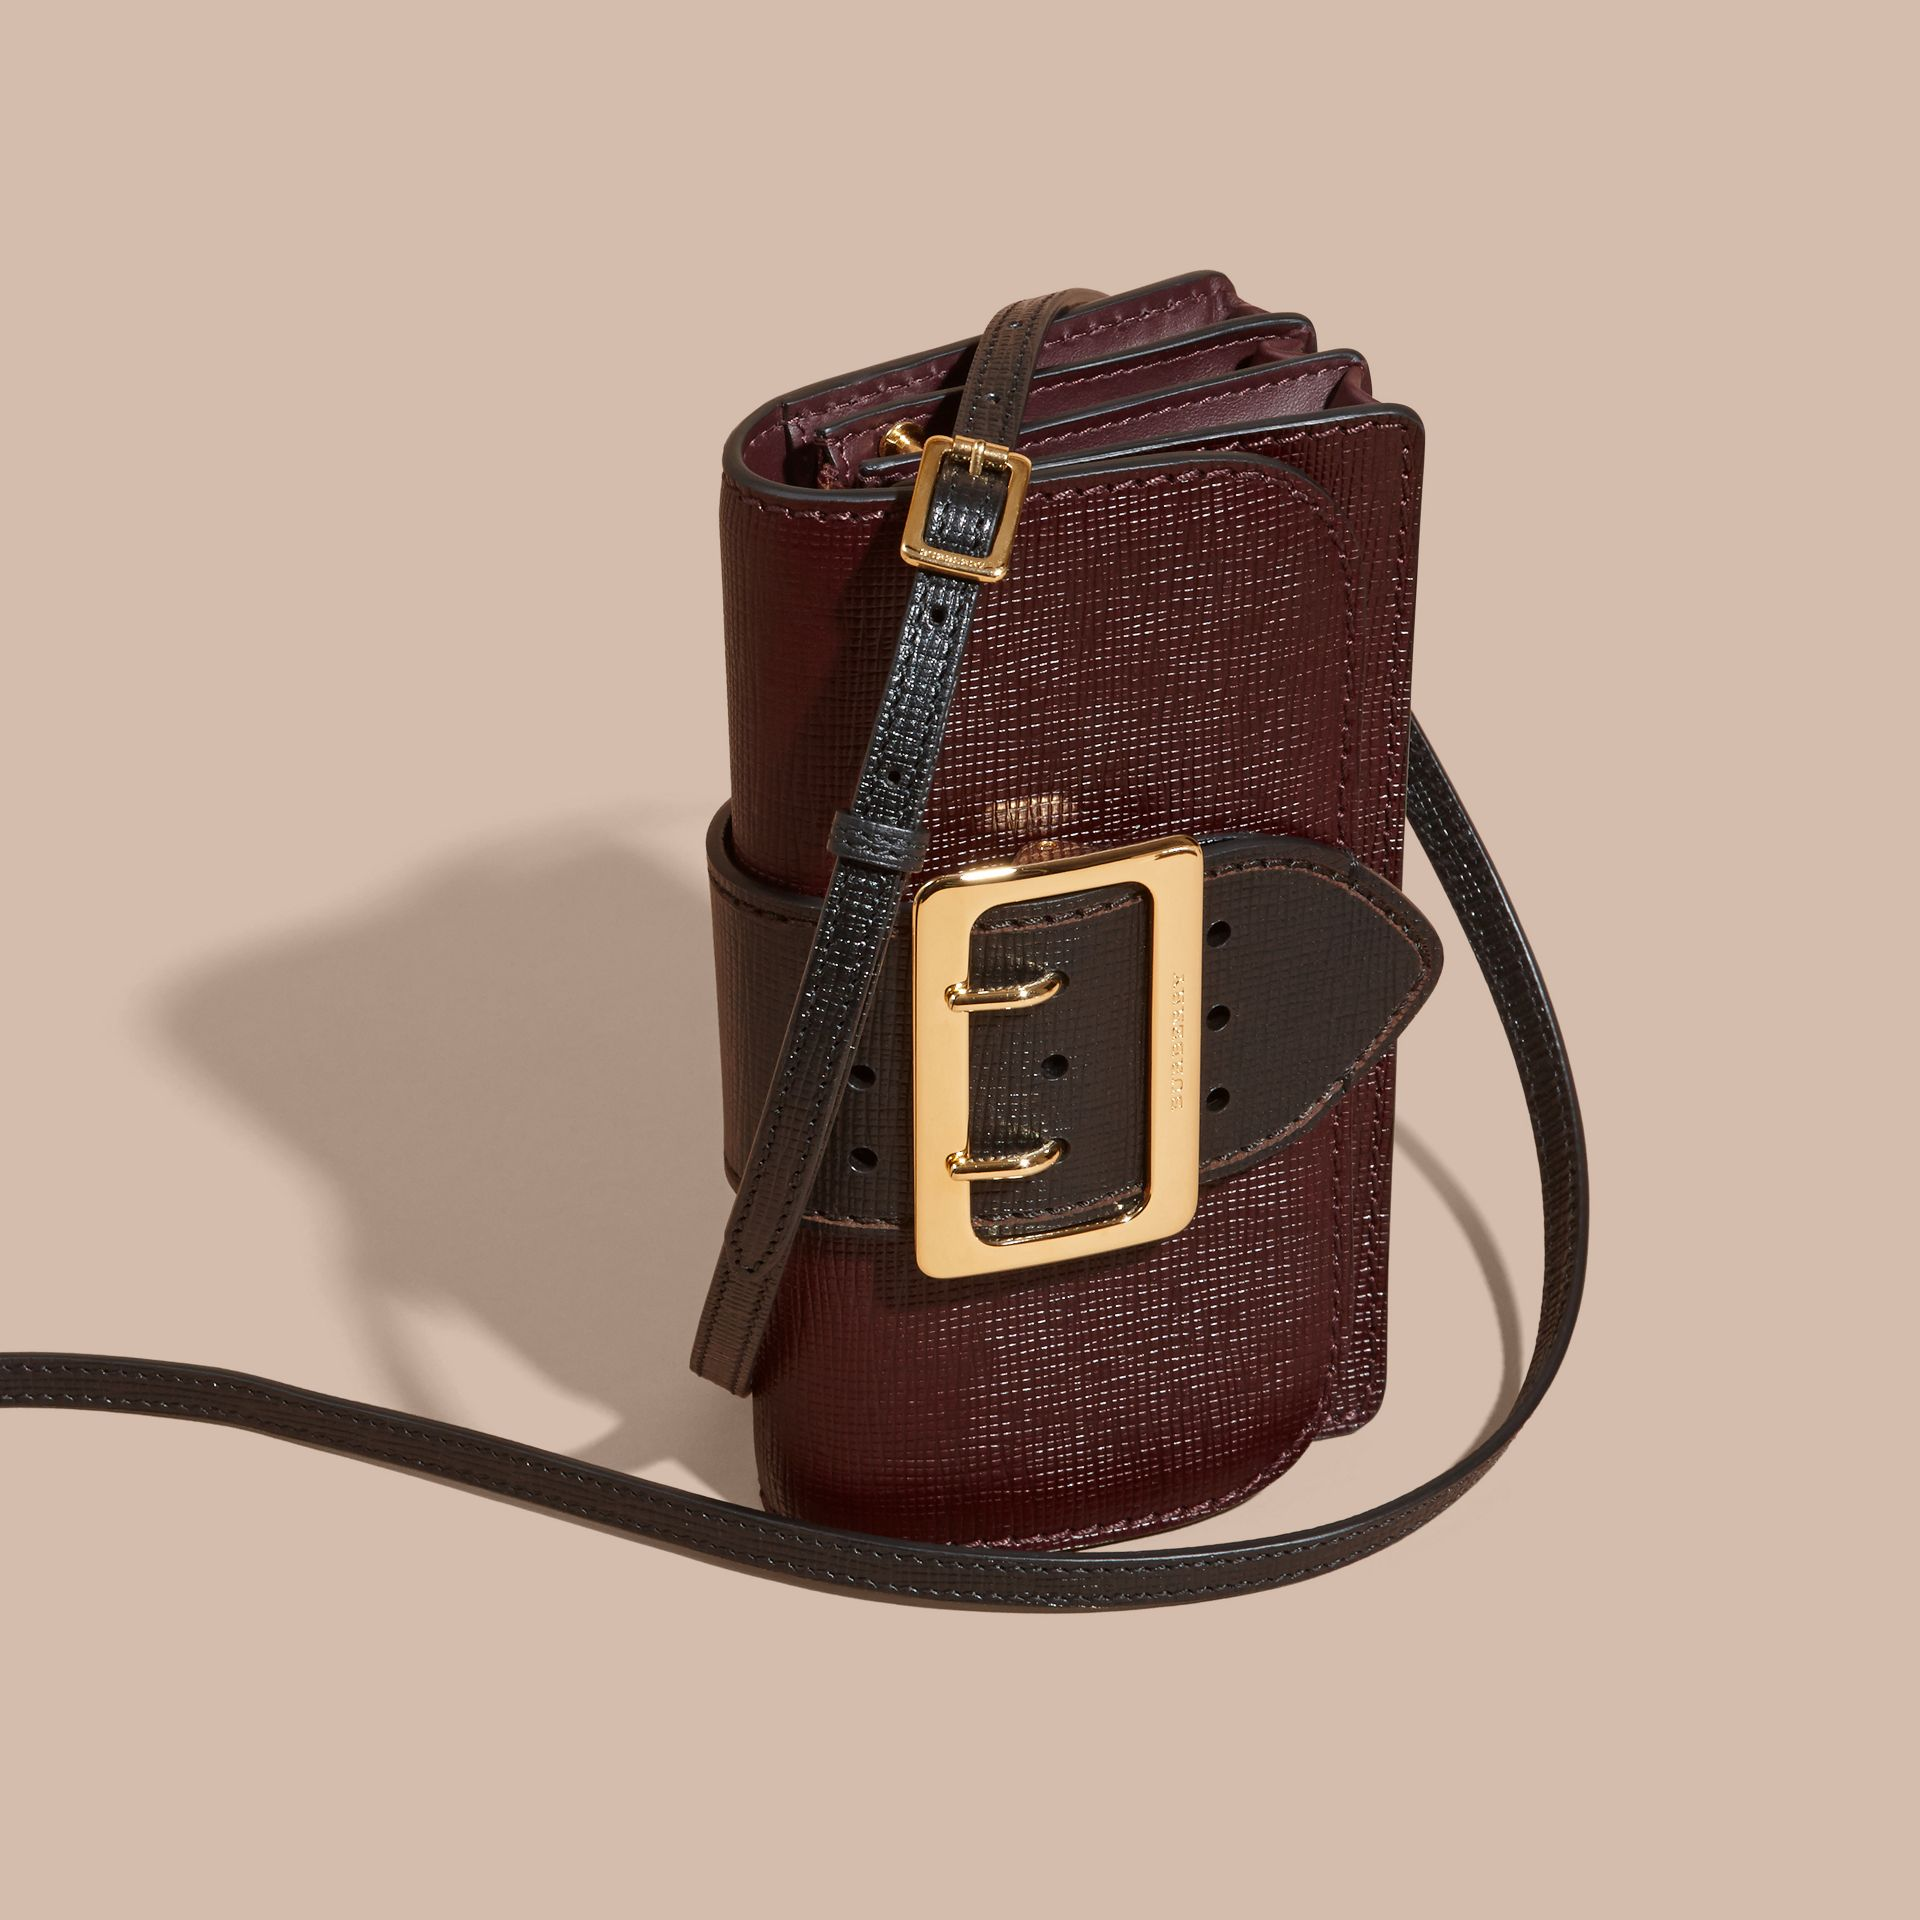 Burgundy/black The Small Buckle Bag in Textured Leather Burgundy/black - gallery image 8